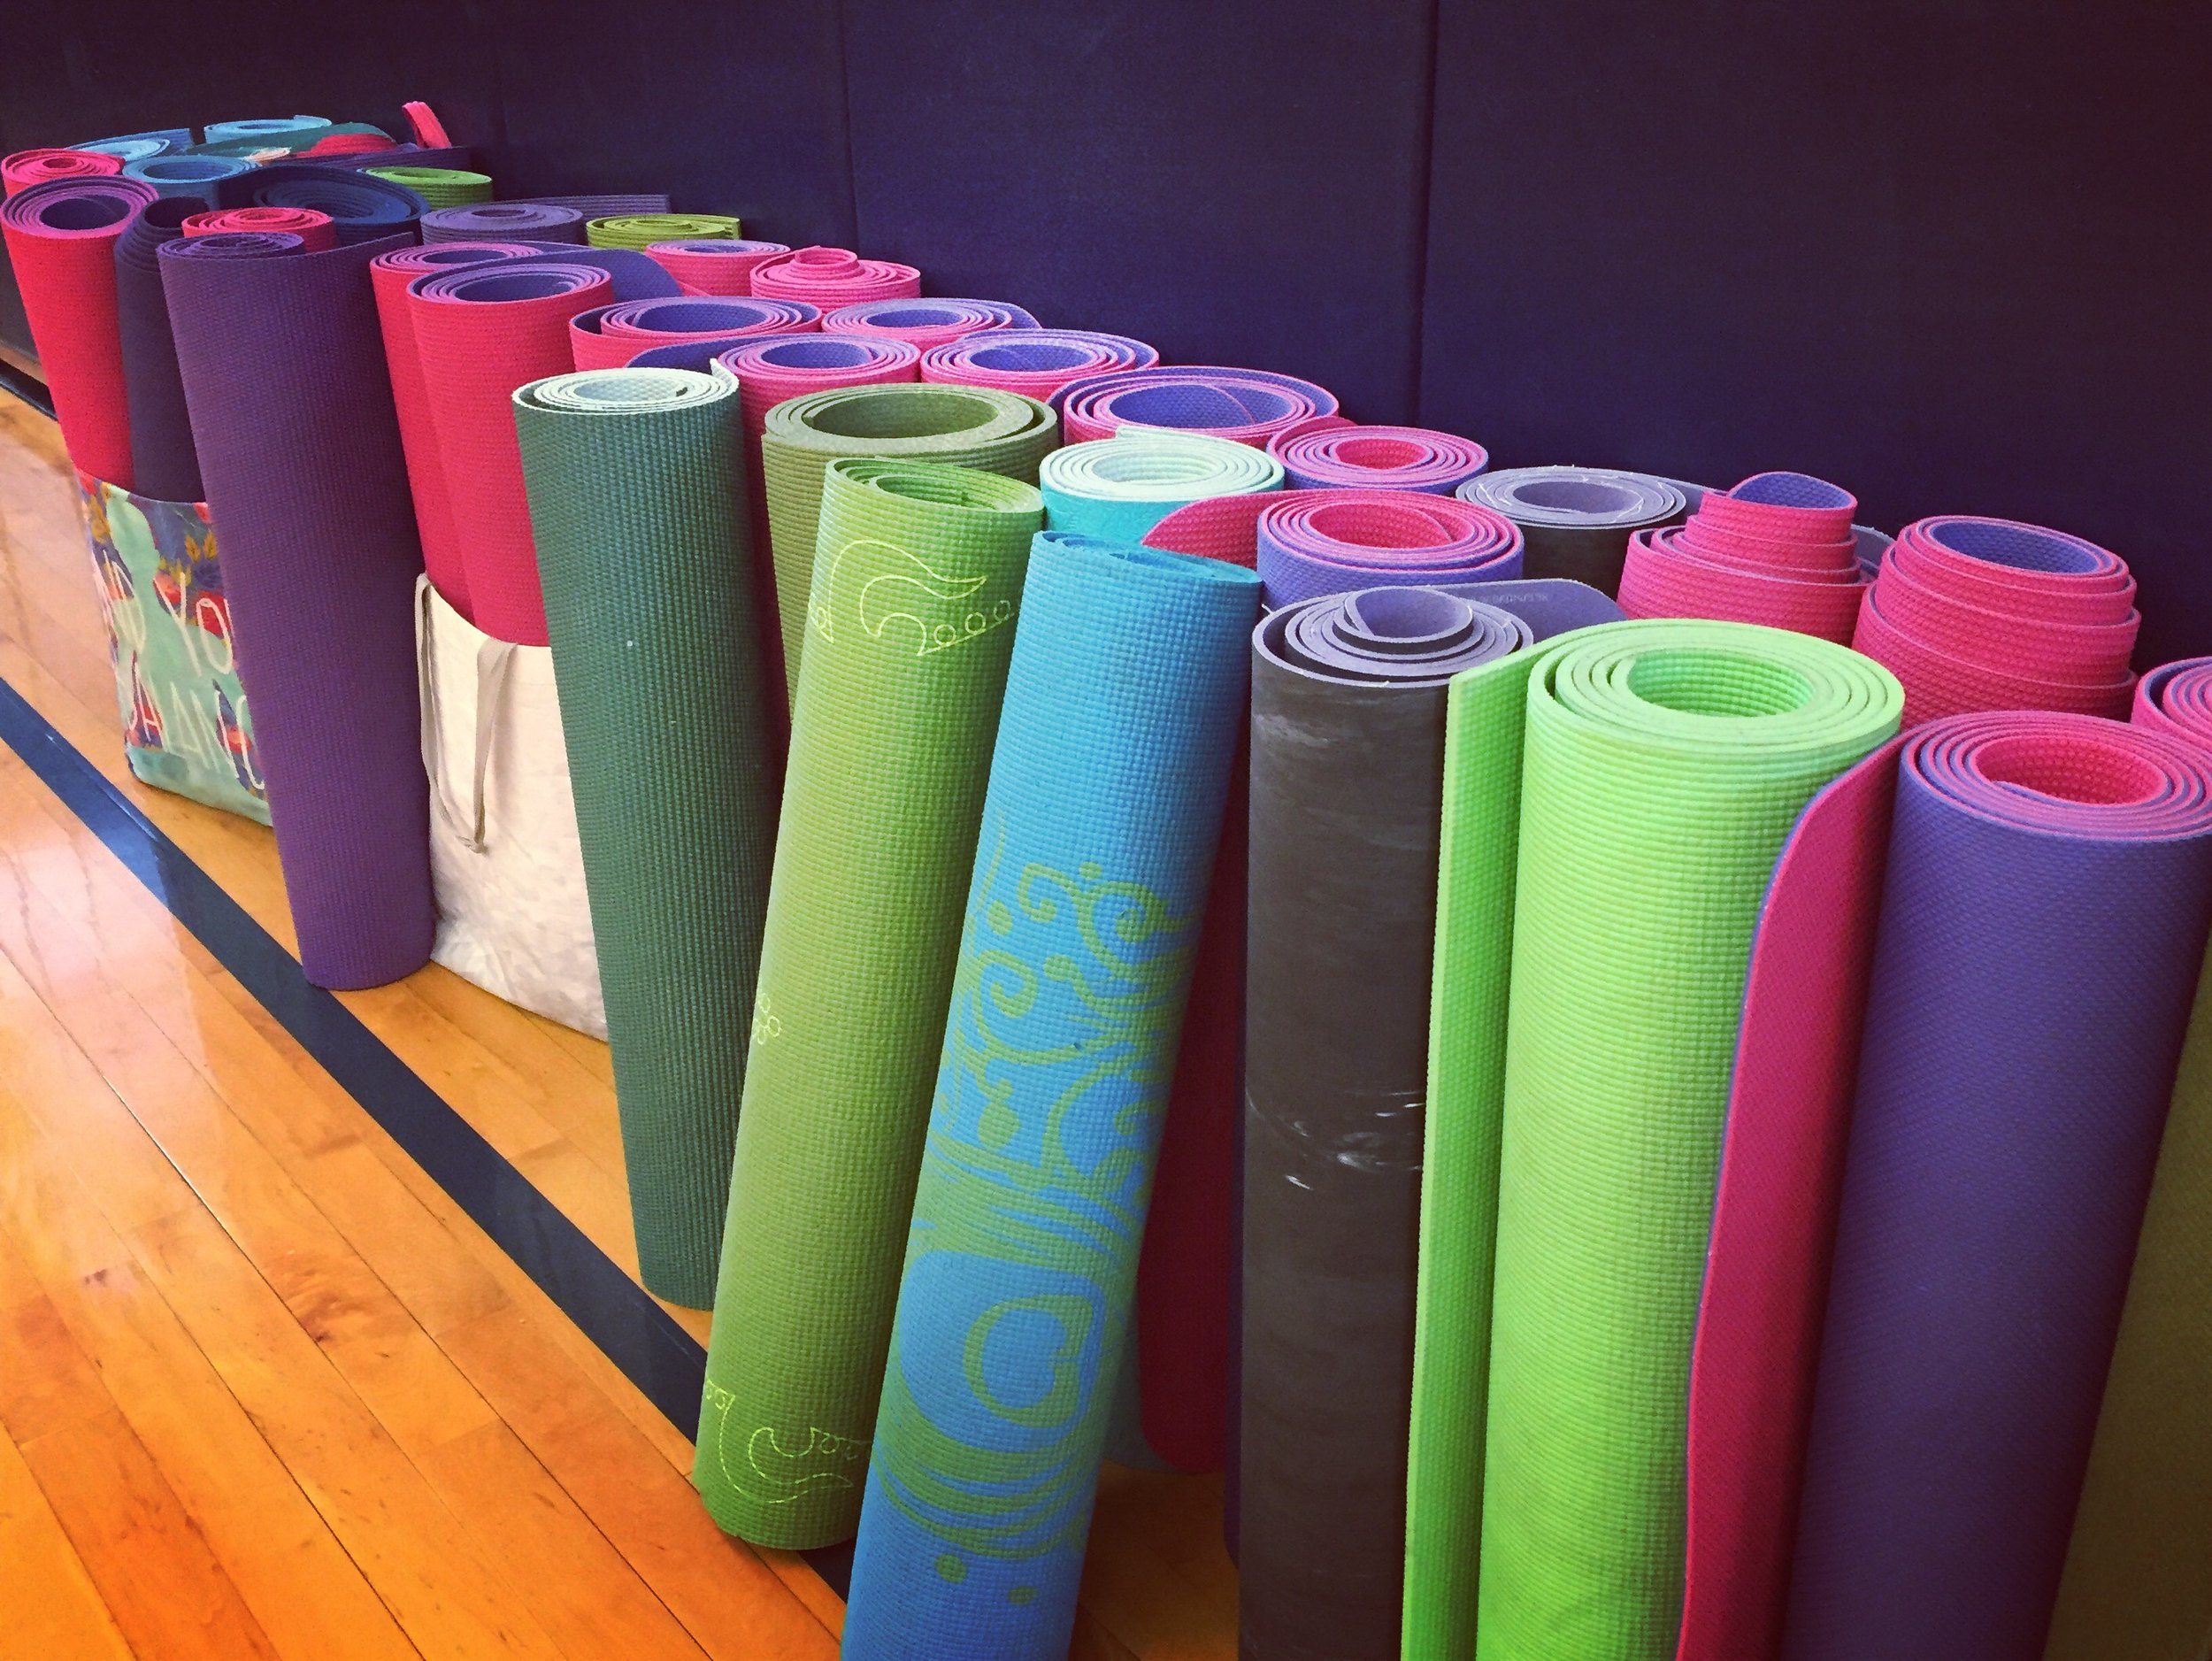 WEDNESDAY, 1/16 (YOGA AT SCHOOL) -